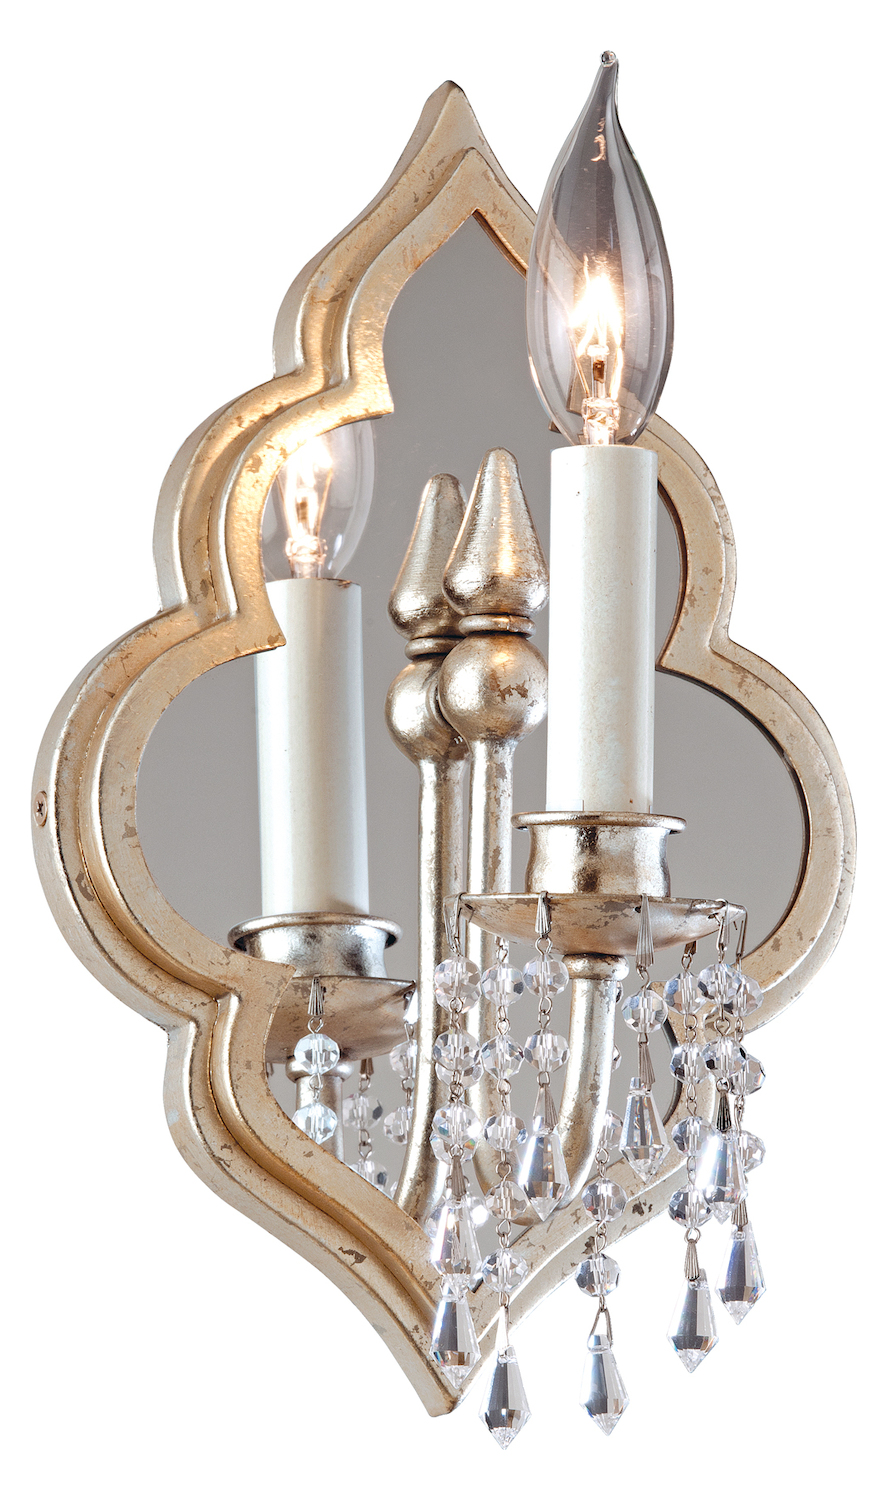 Corbett Silver Leaf Finish With Antique Mist Bijoux 1 Light Mirrored Wall Sconce